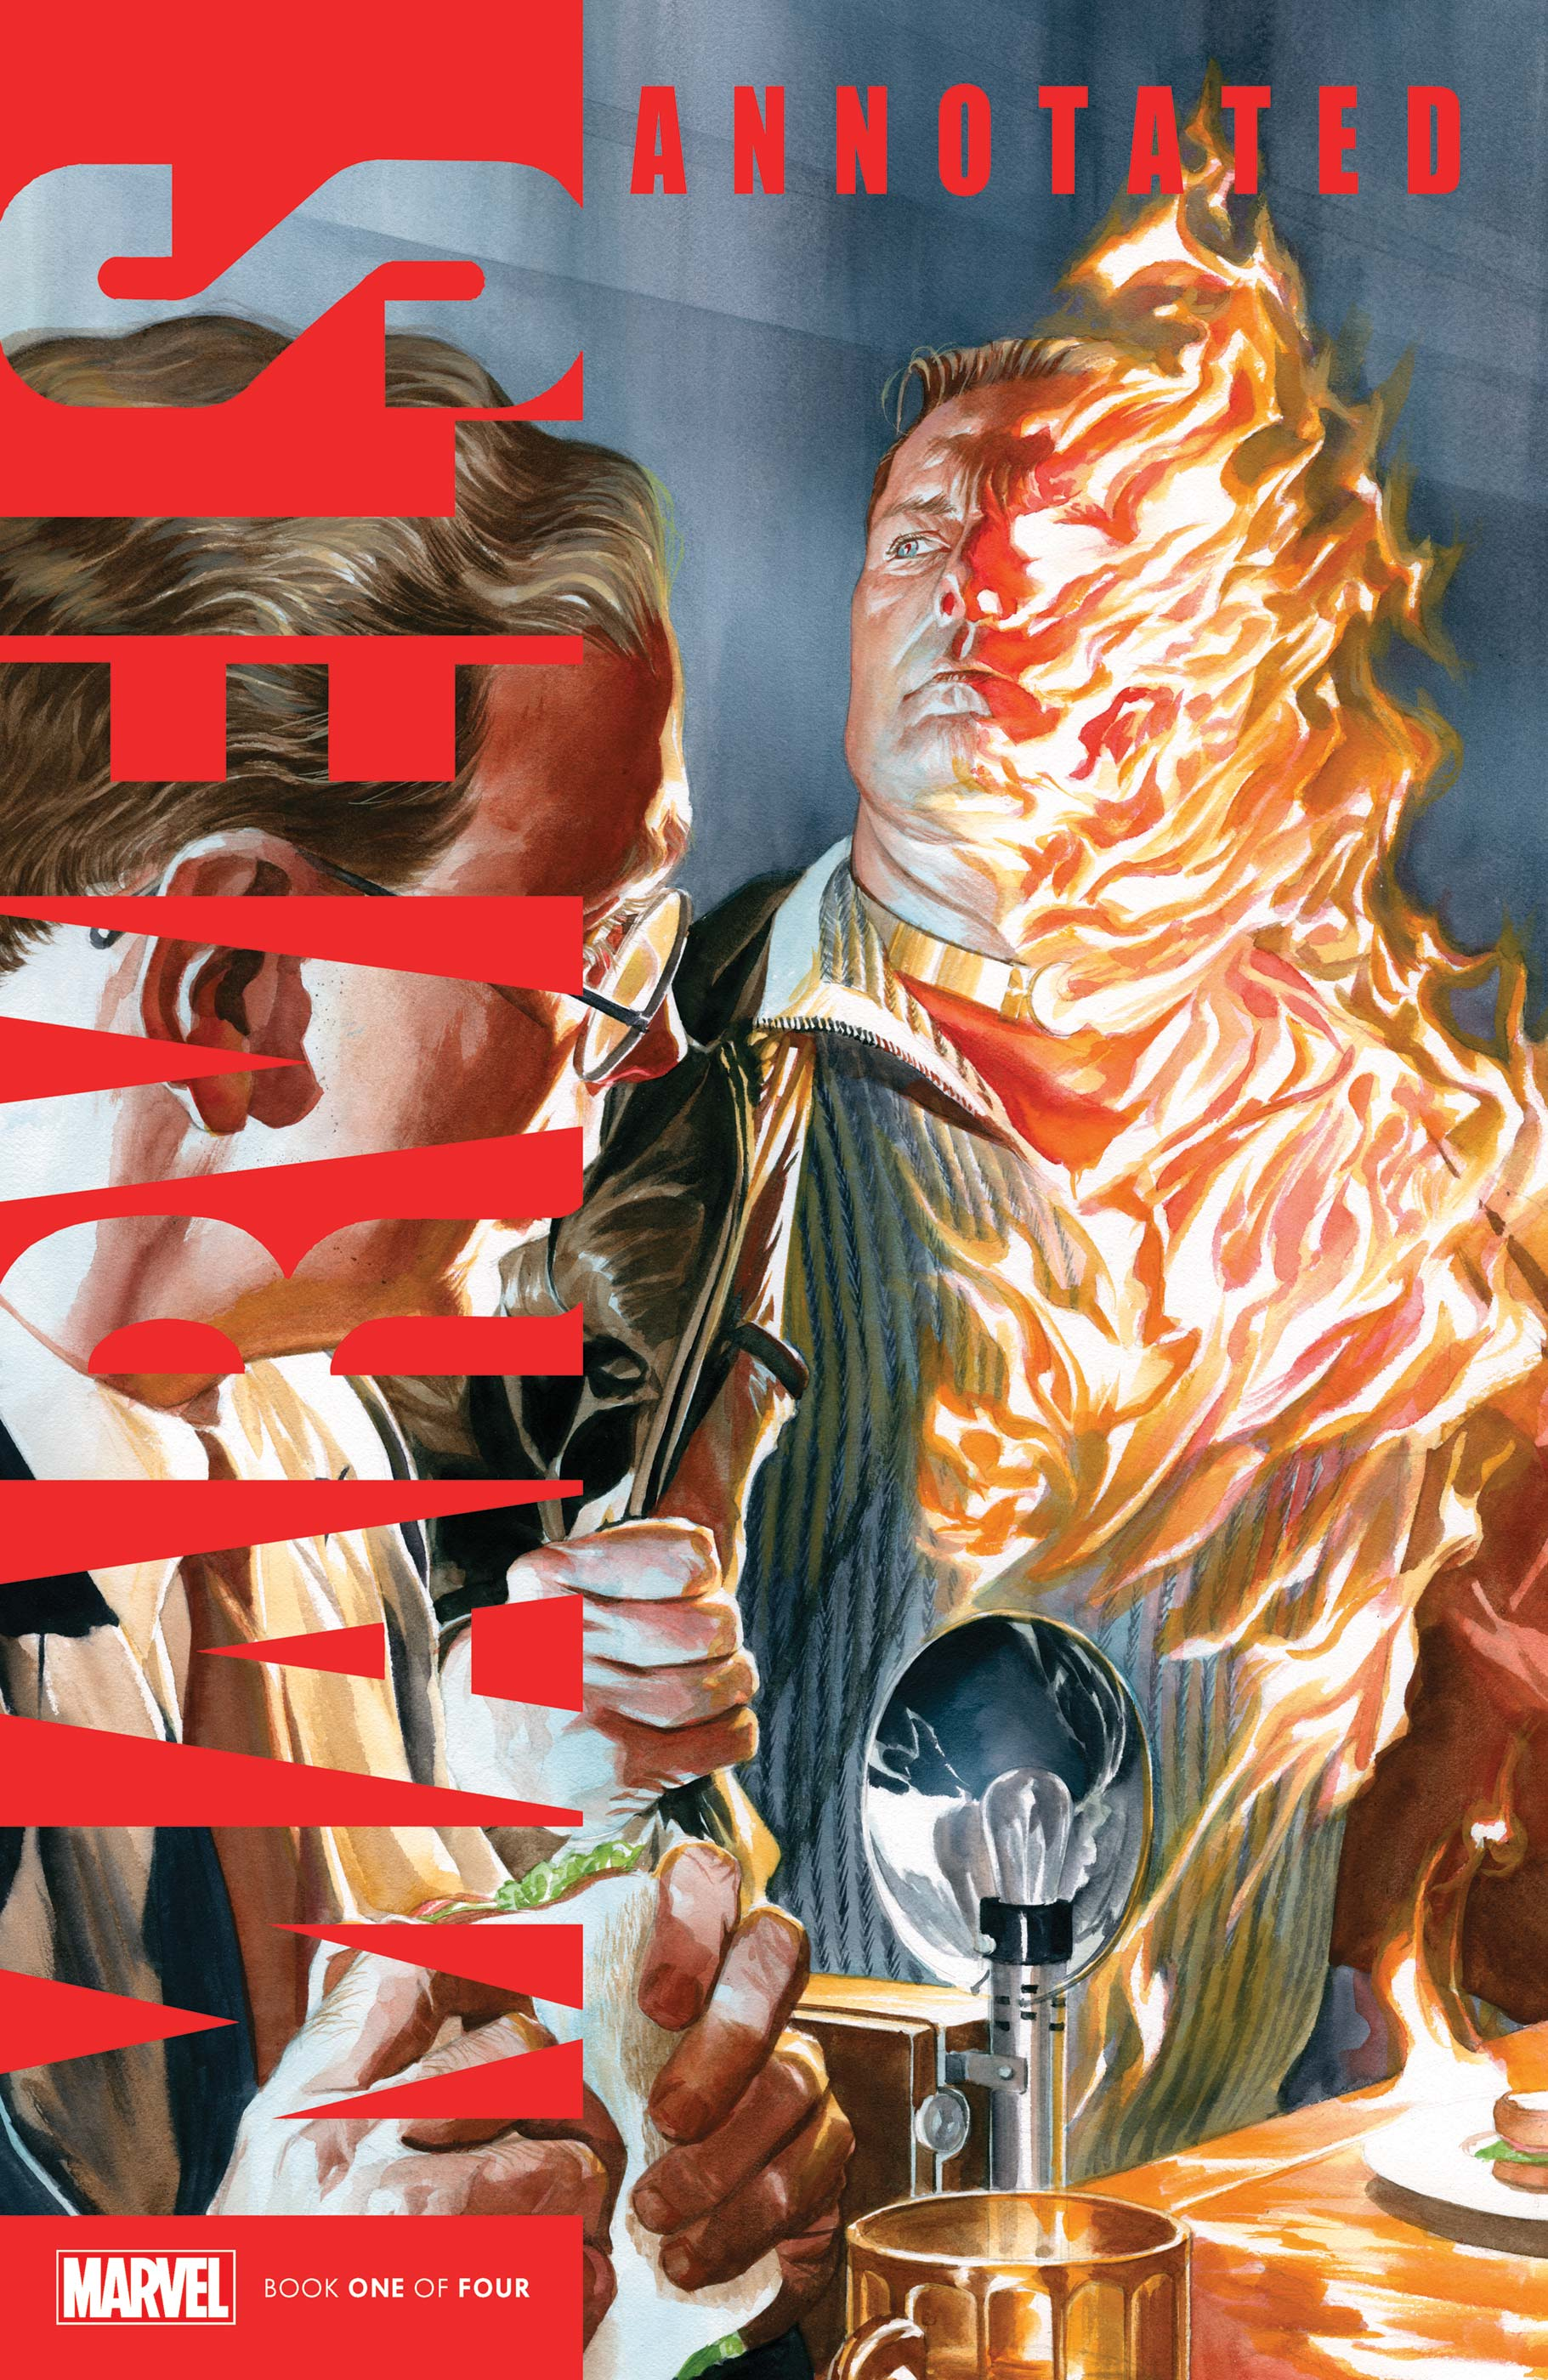 Marvels Annotated (2019) #1